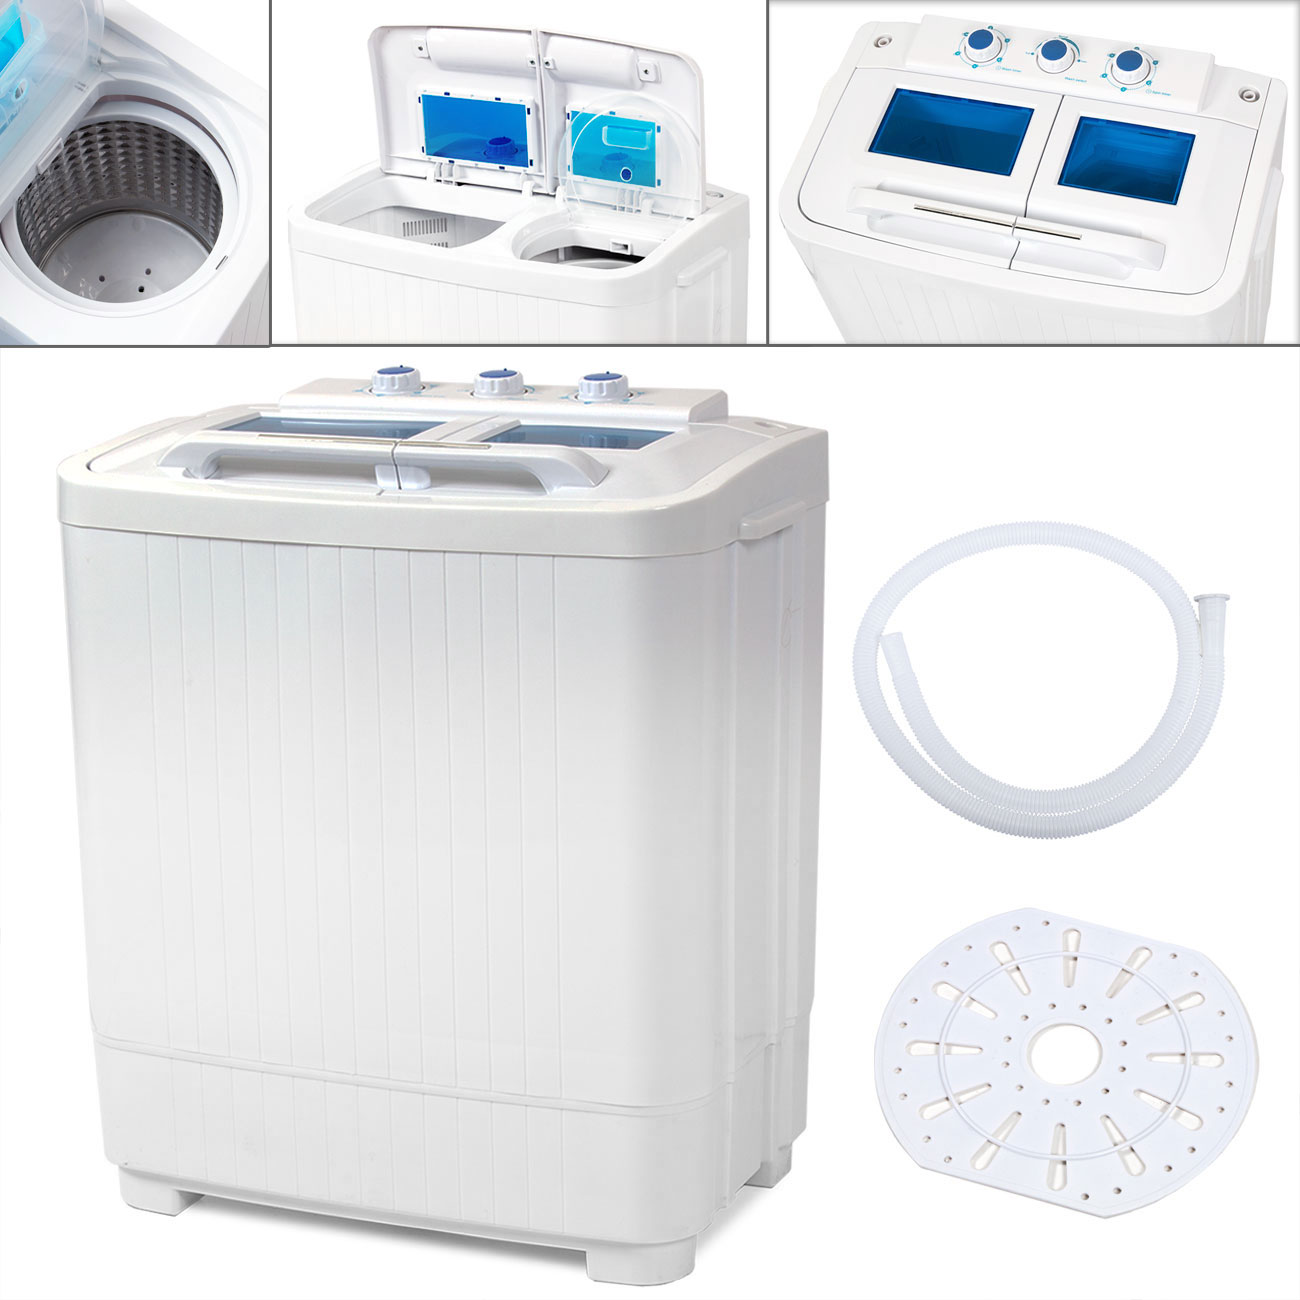 Portable Washing Machine Compact Wash Spin Dry Cycle ...